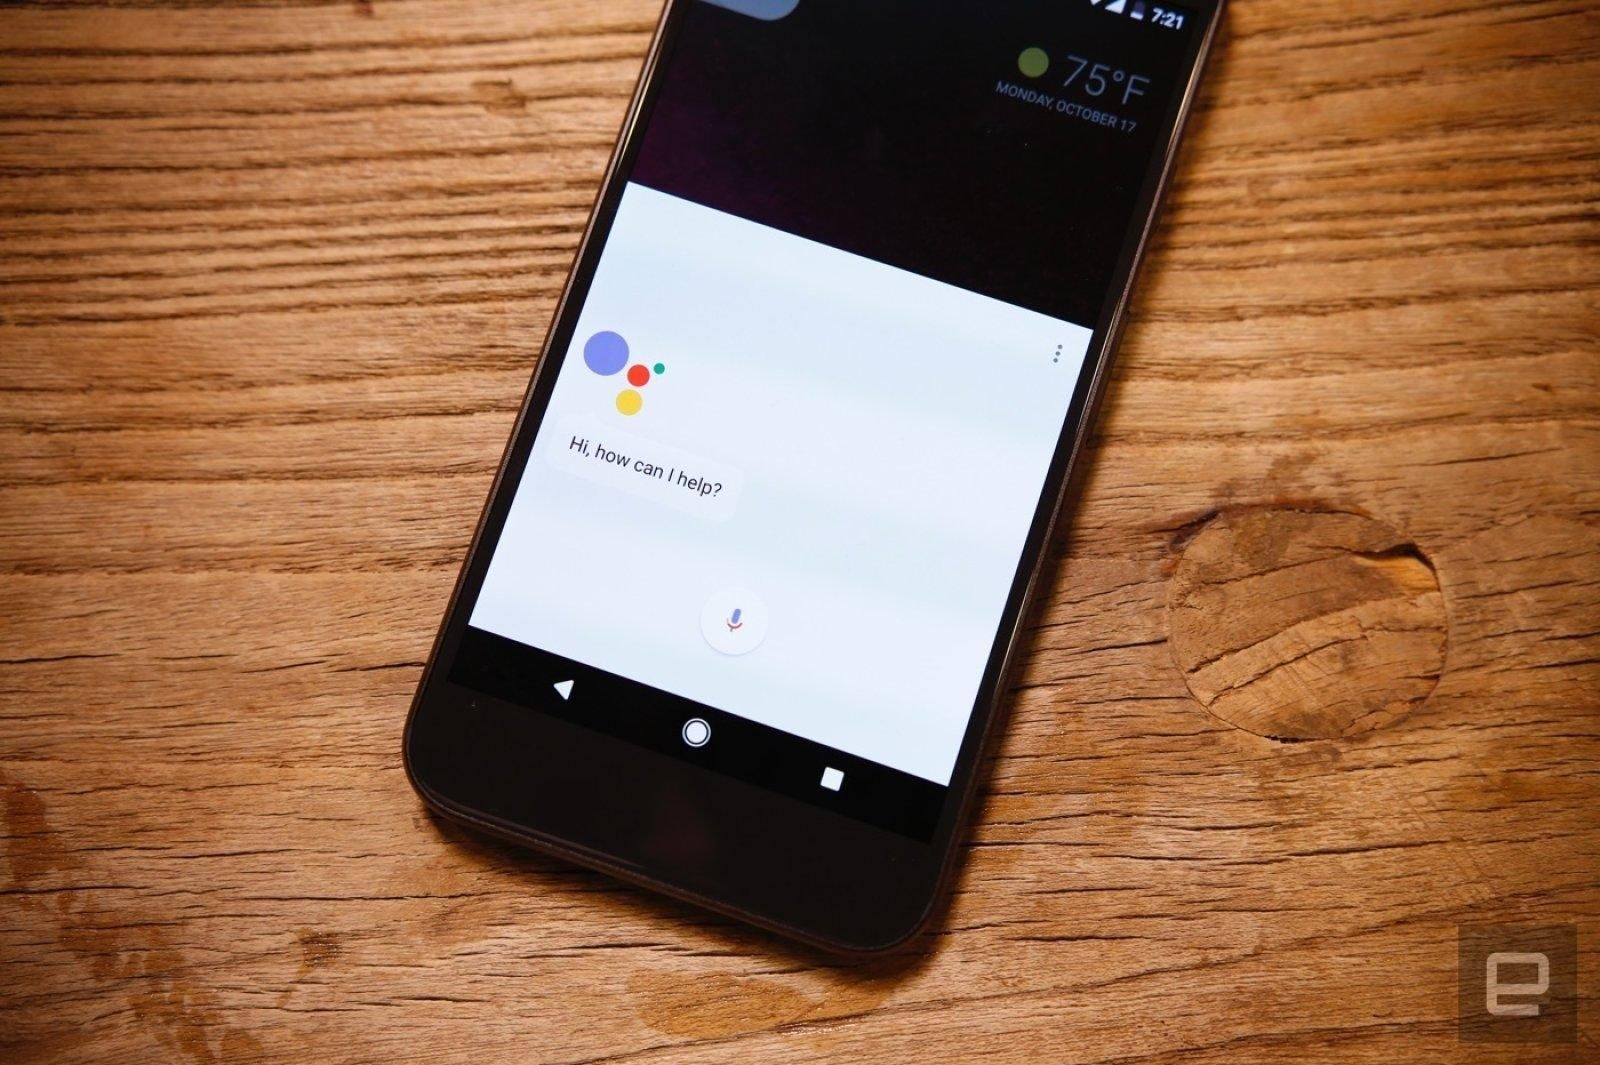 Google Assistant for Android now supports Spanish and